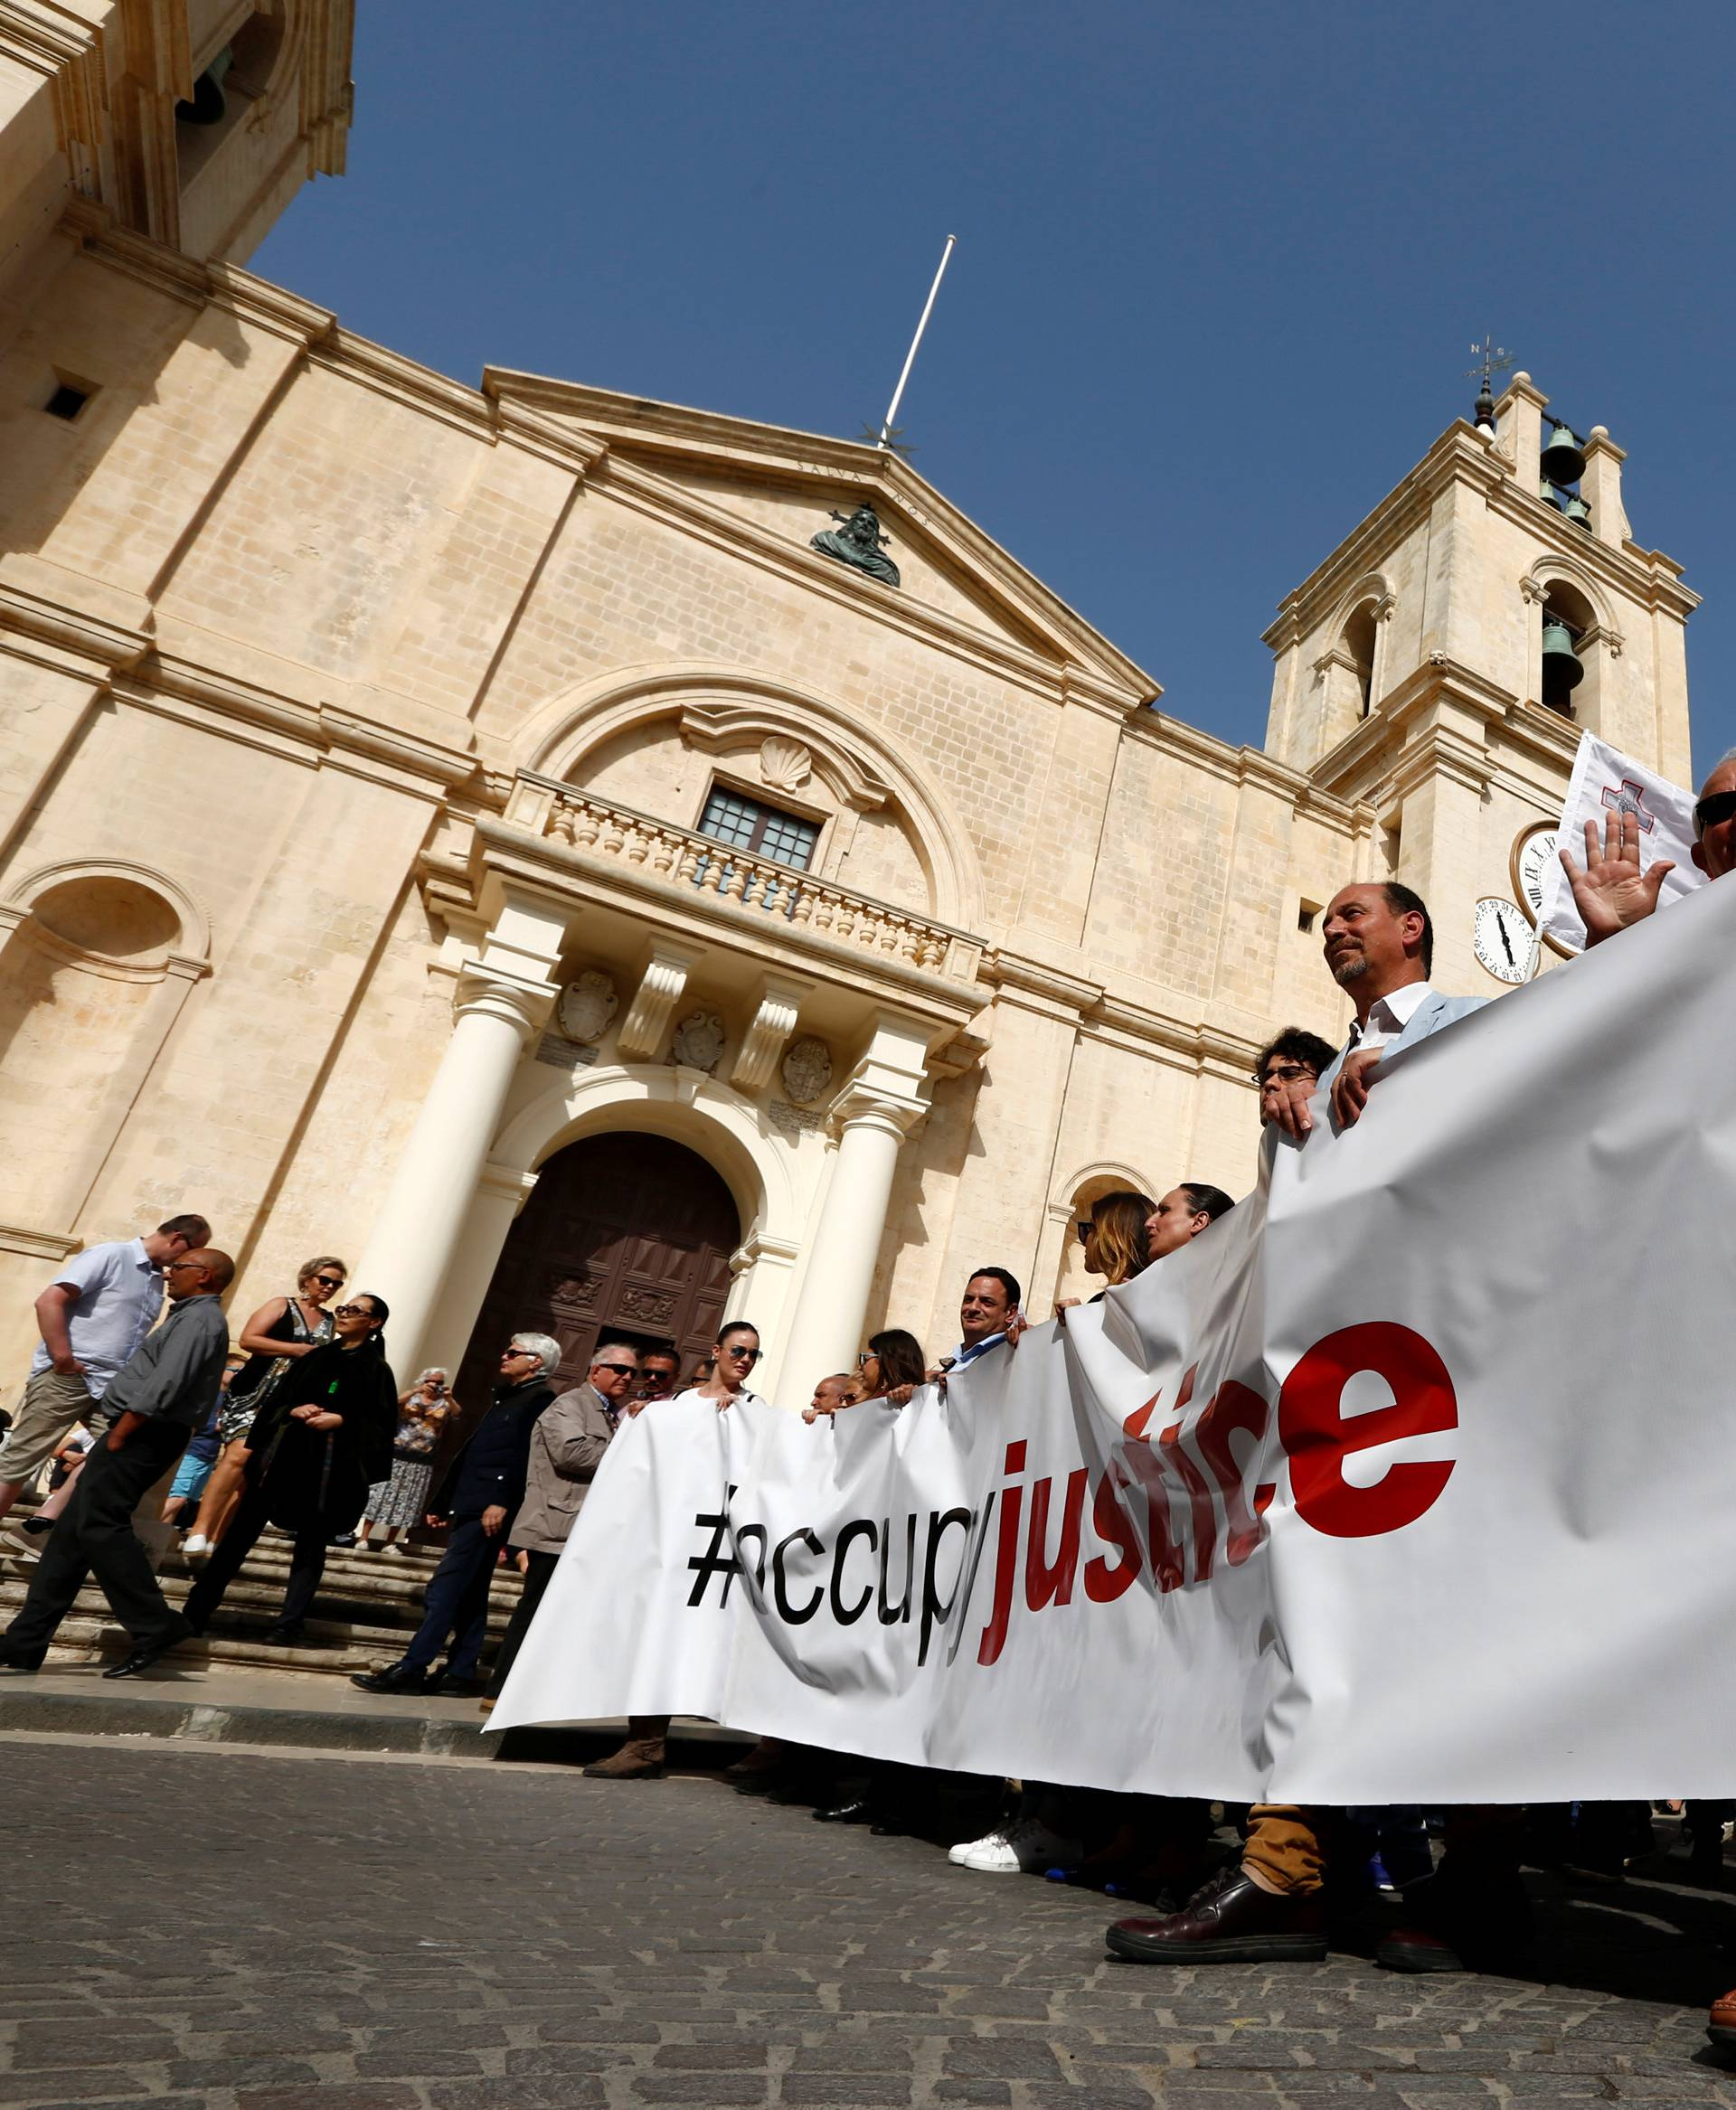 Demonstrators carry a banner during a protest against government corruption in light of the revelations in the Daphne Project, in Valletta